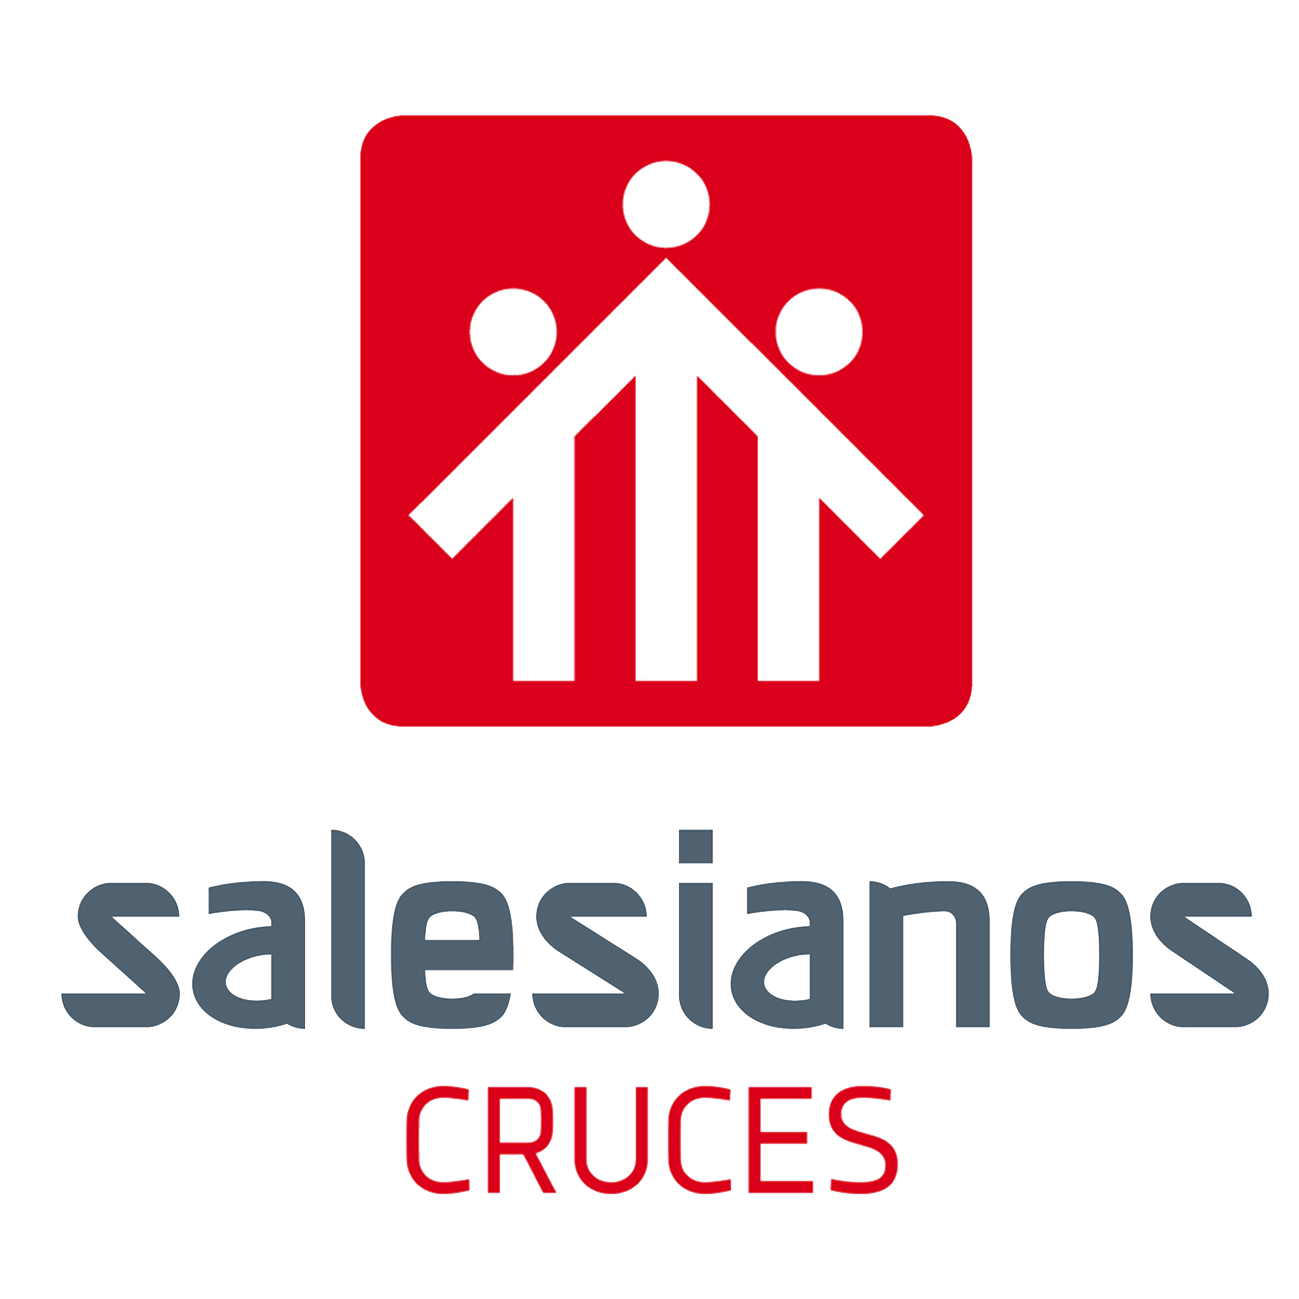 salesianoscruces.com